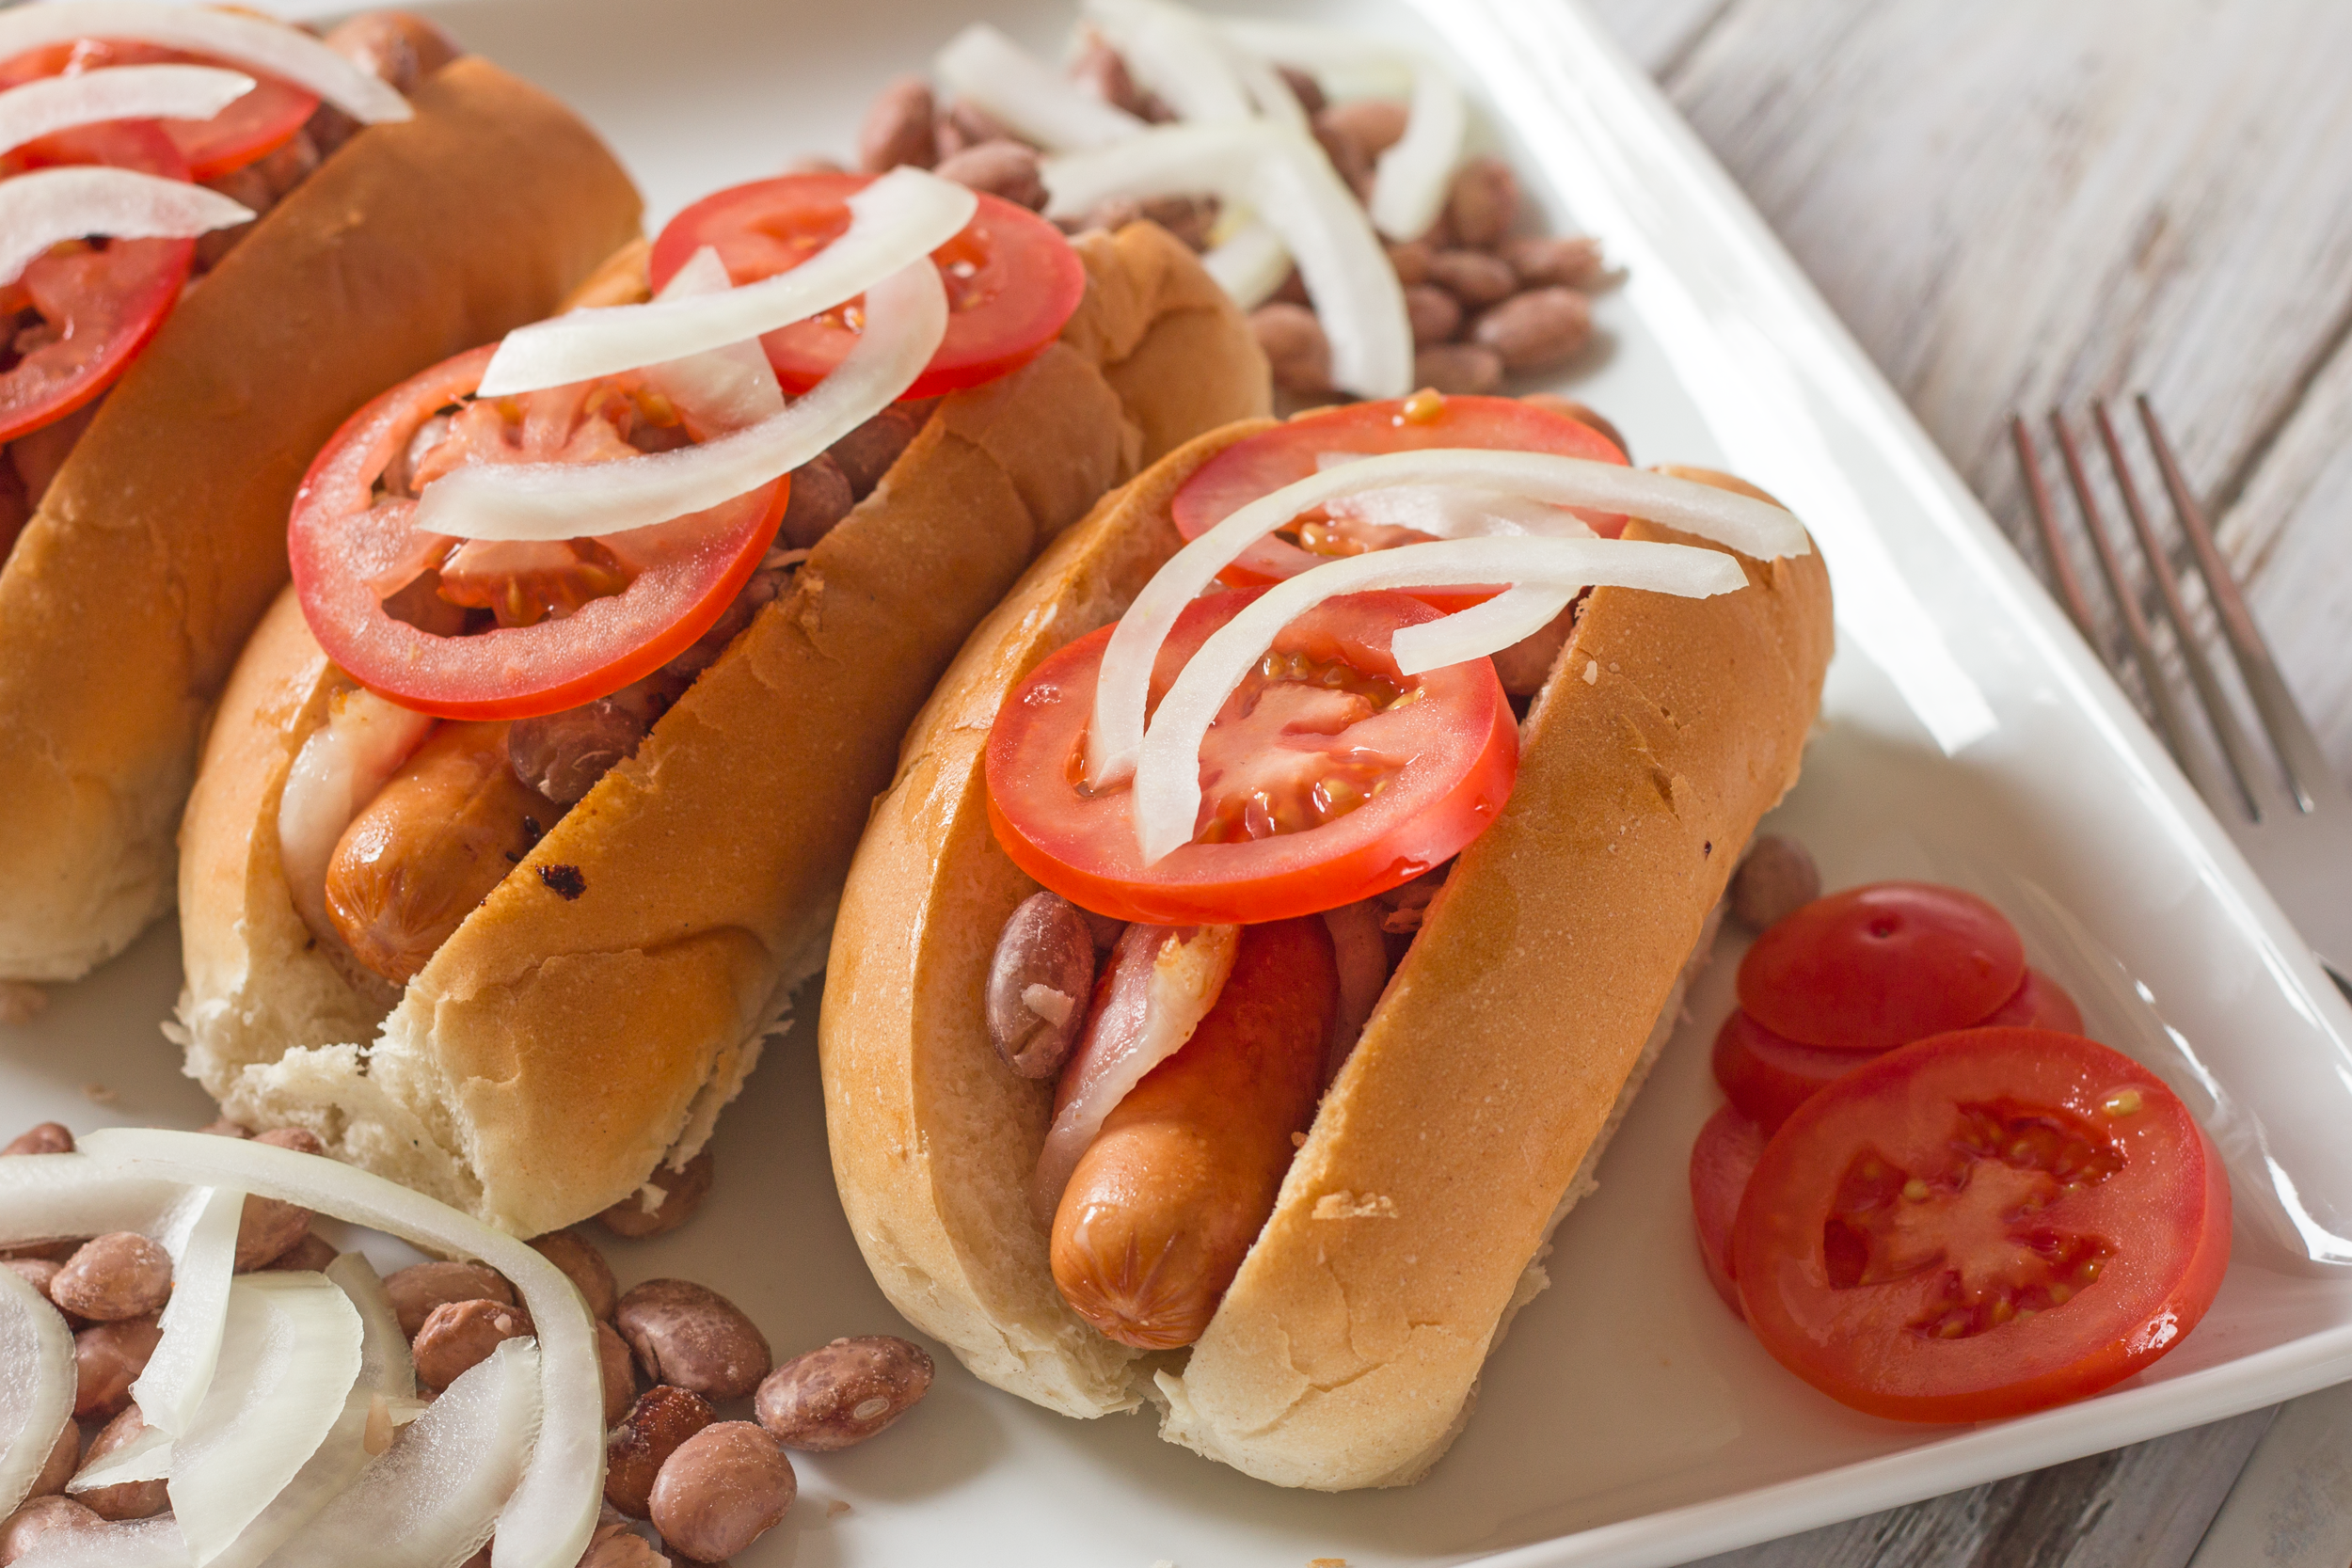 The hot dog is one of those foods that's nearly impossible to mess up. You heat it through, plop it on a bun, squirt on some mustard, and call it lunch.